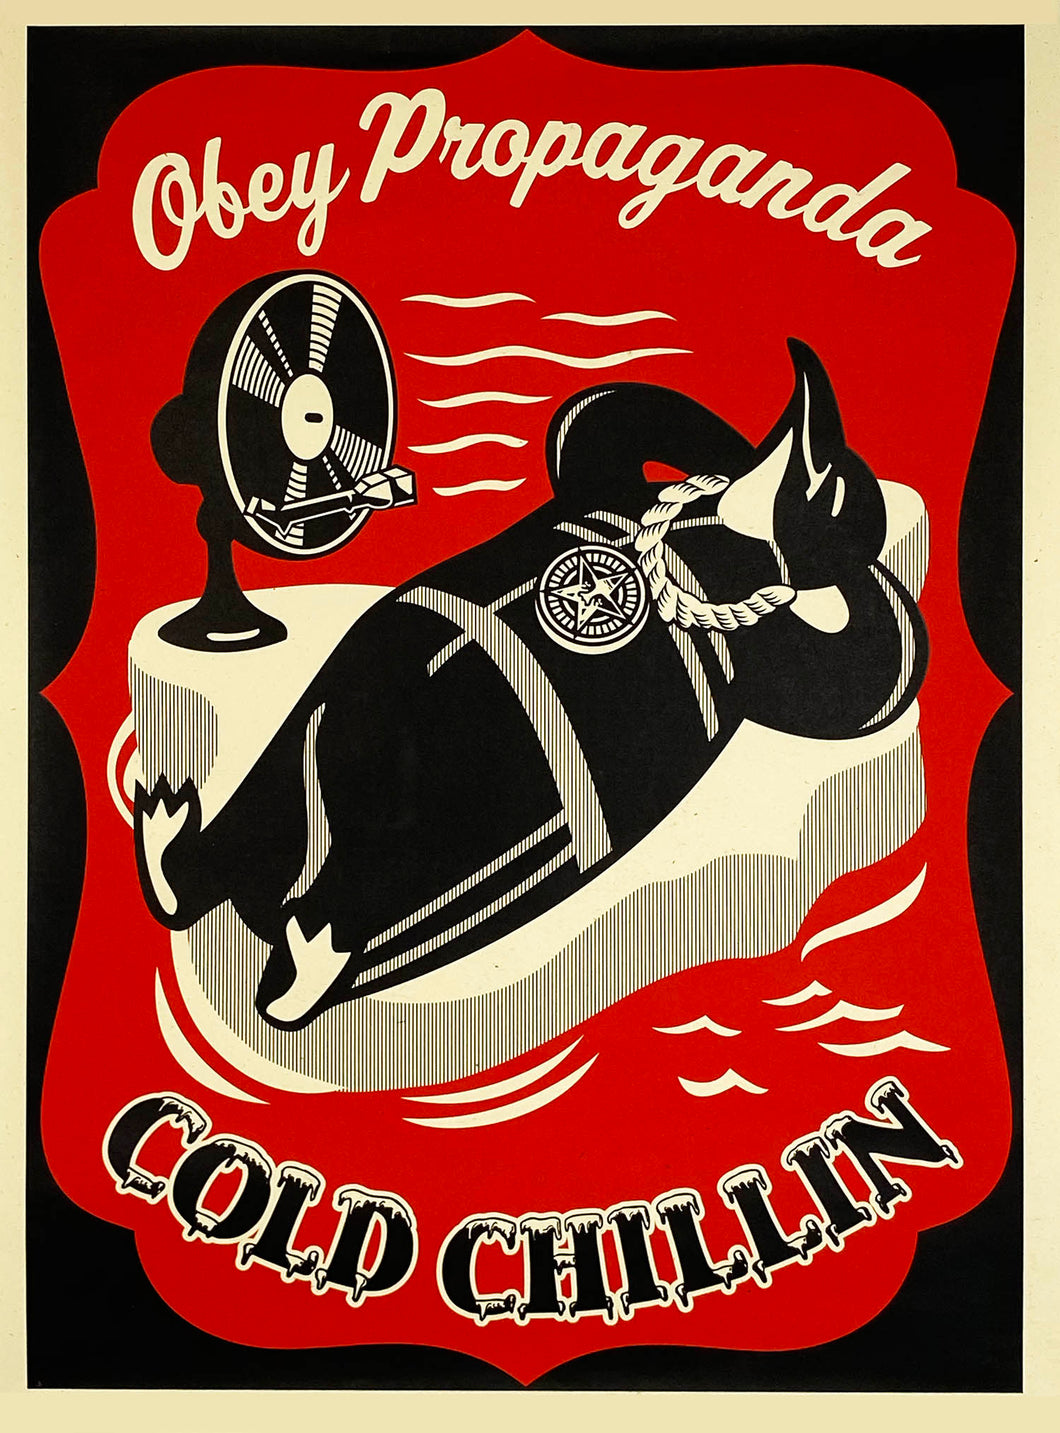 SHEPARD FAIREY 'Cold Chillin'' (red) Paster Print